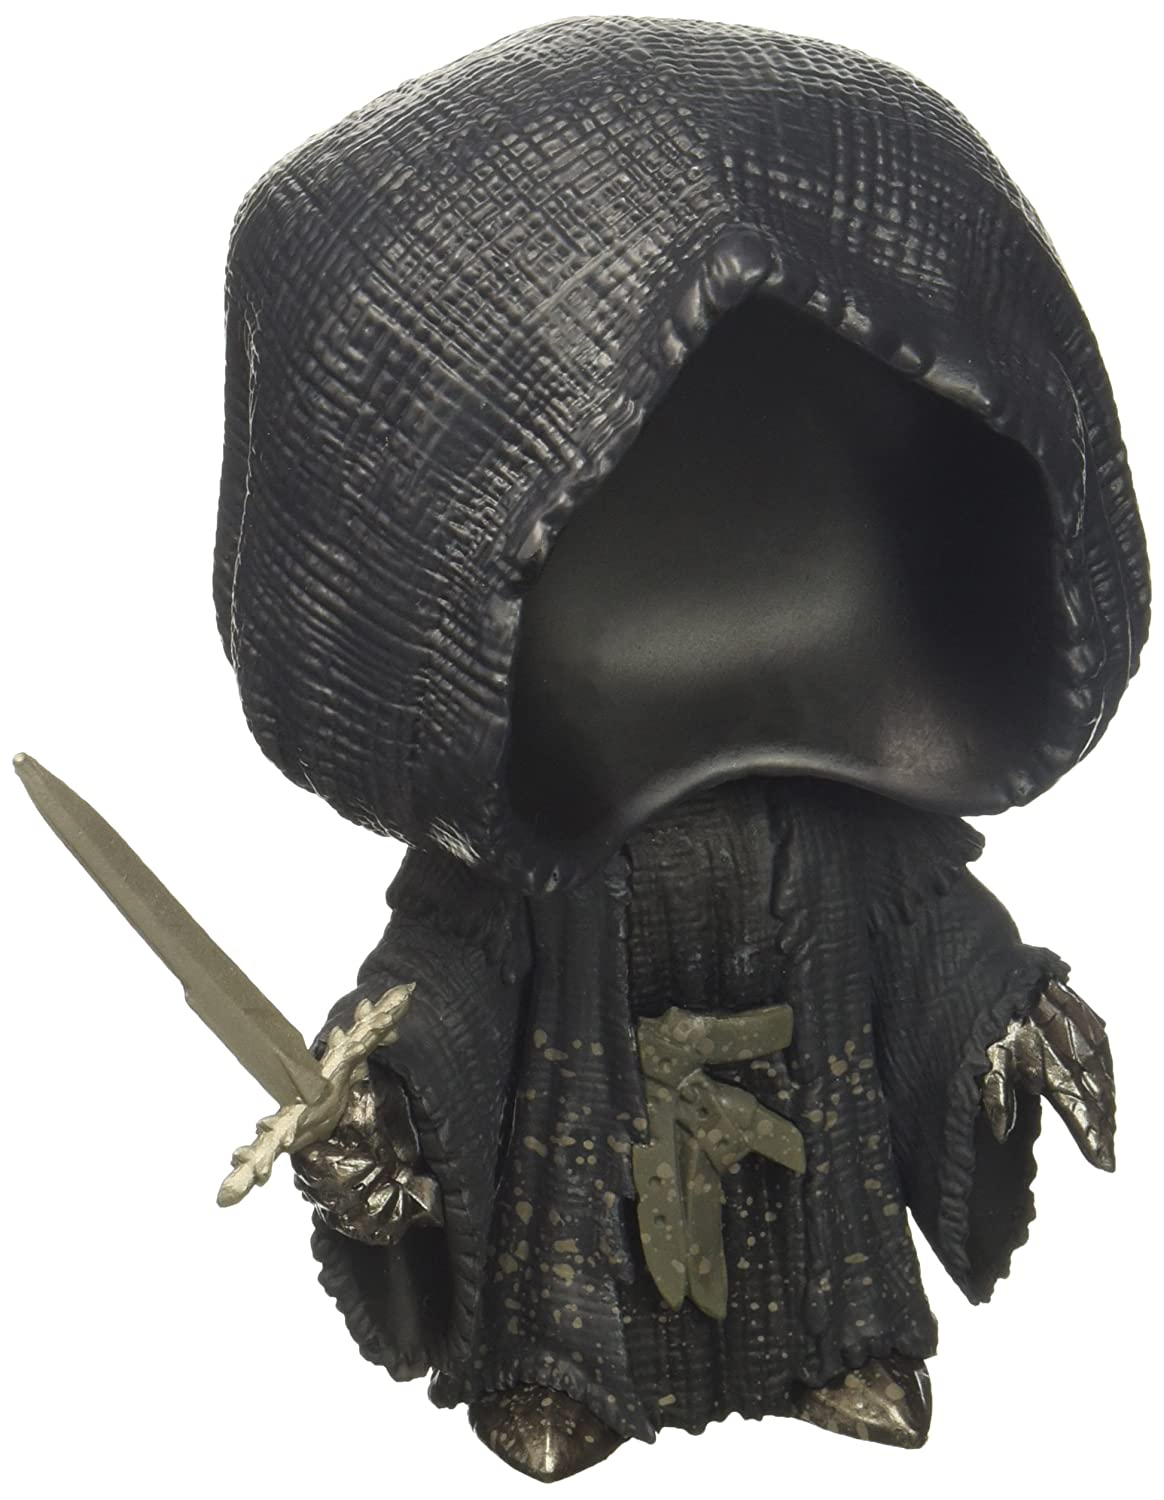 Lord of The Rings/Hobbit - Nazgul Funko Pop! Movies: 13554 Accessory Toys & Games